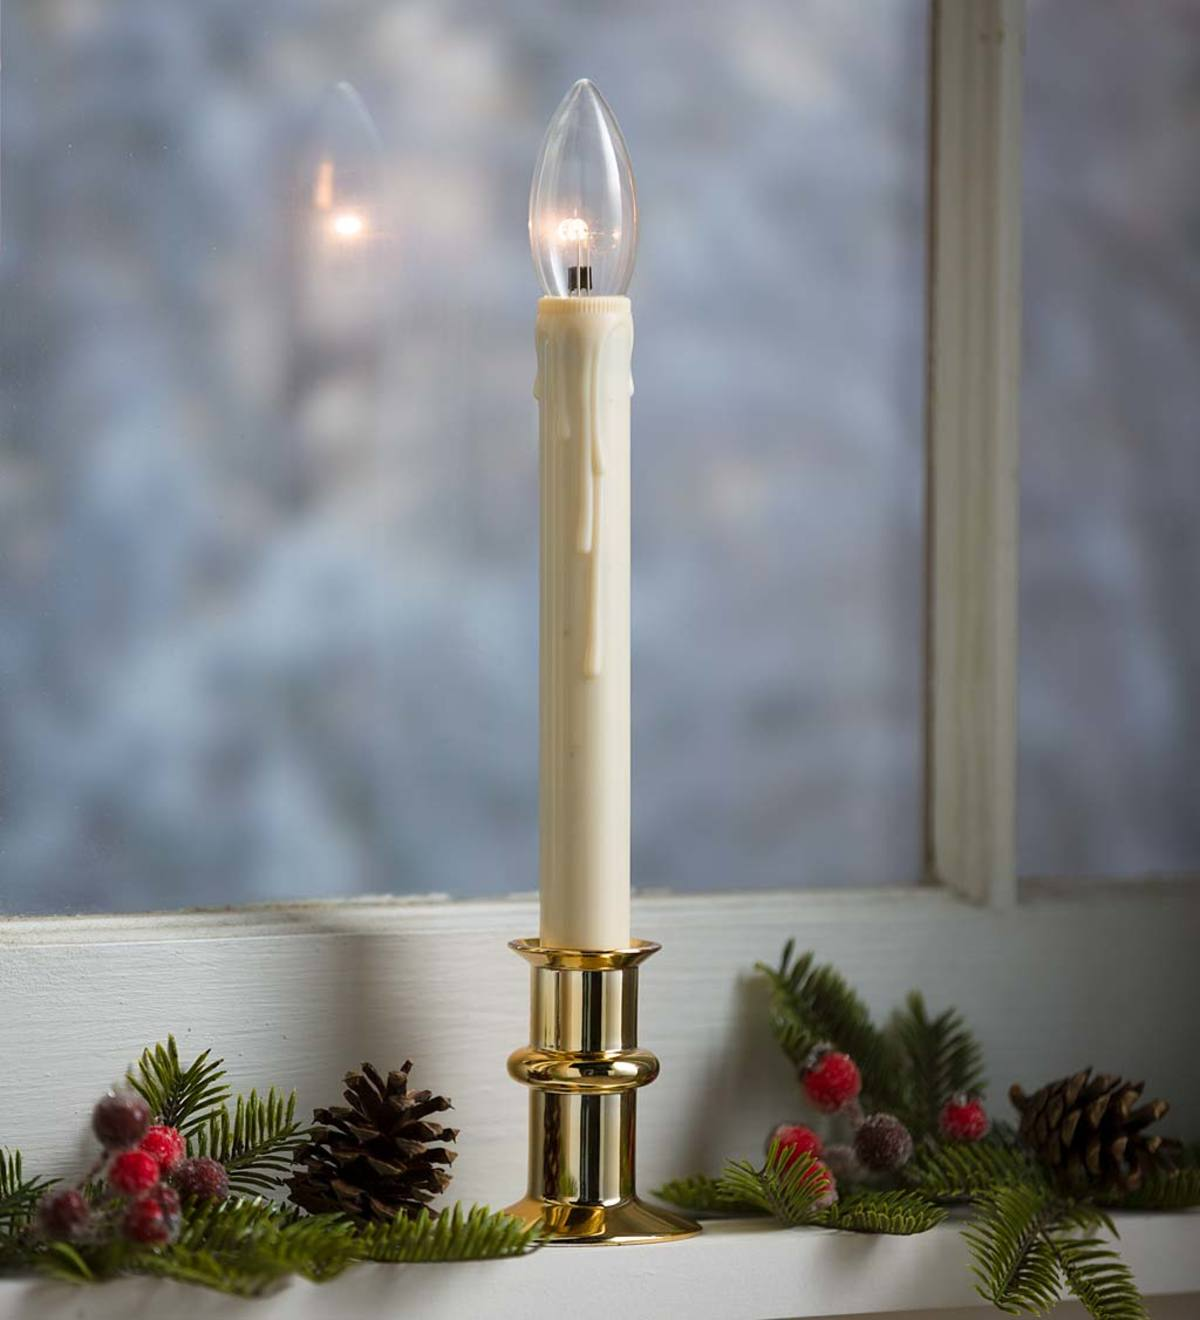 Adjustable Window Hugger Candles, Set of 4 with Remote